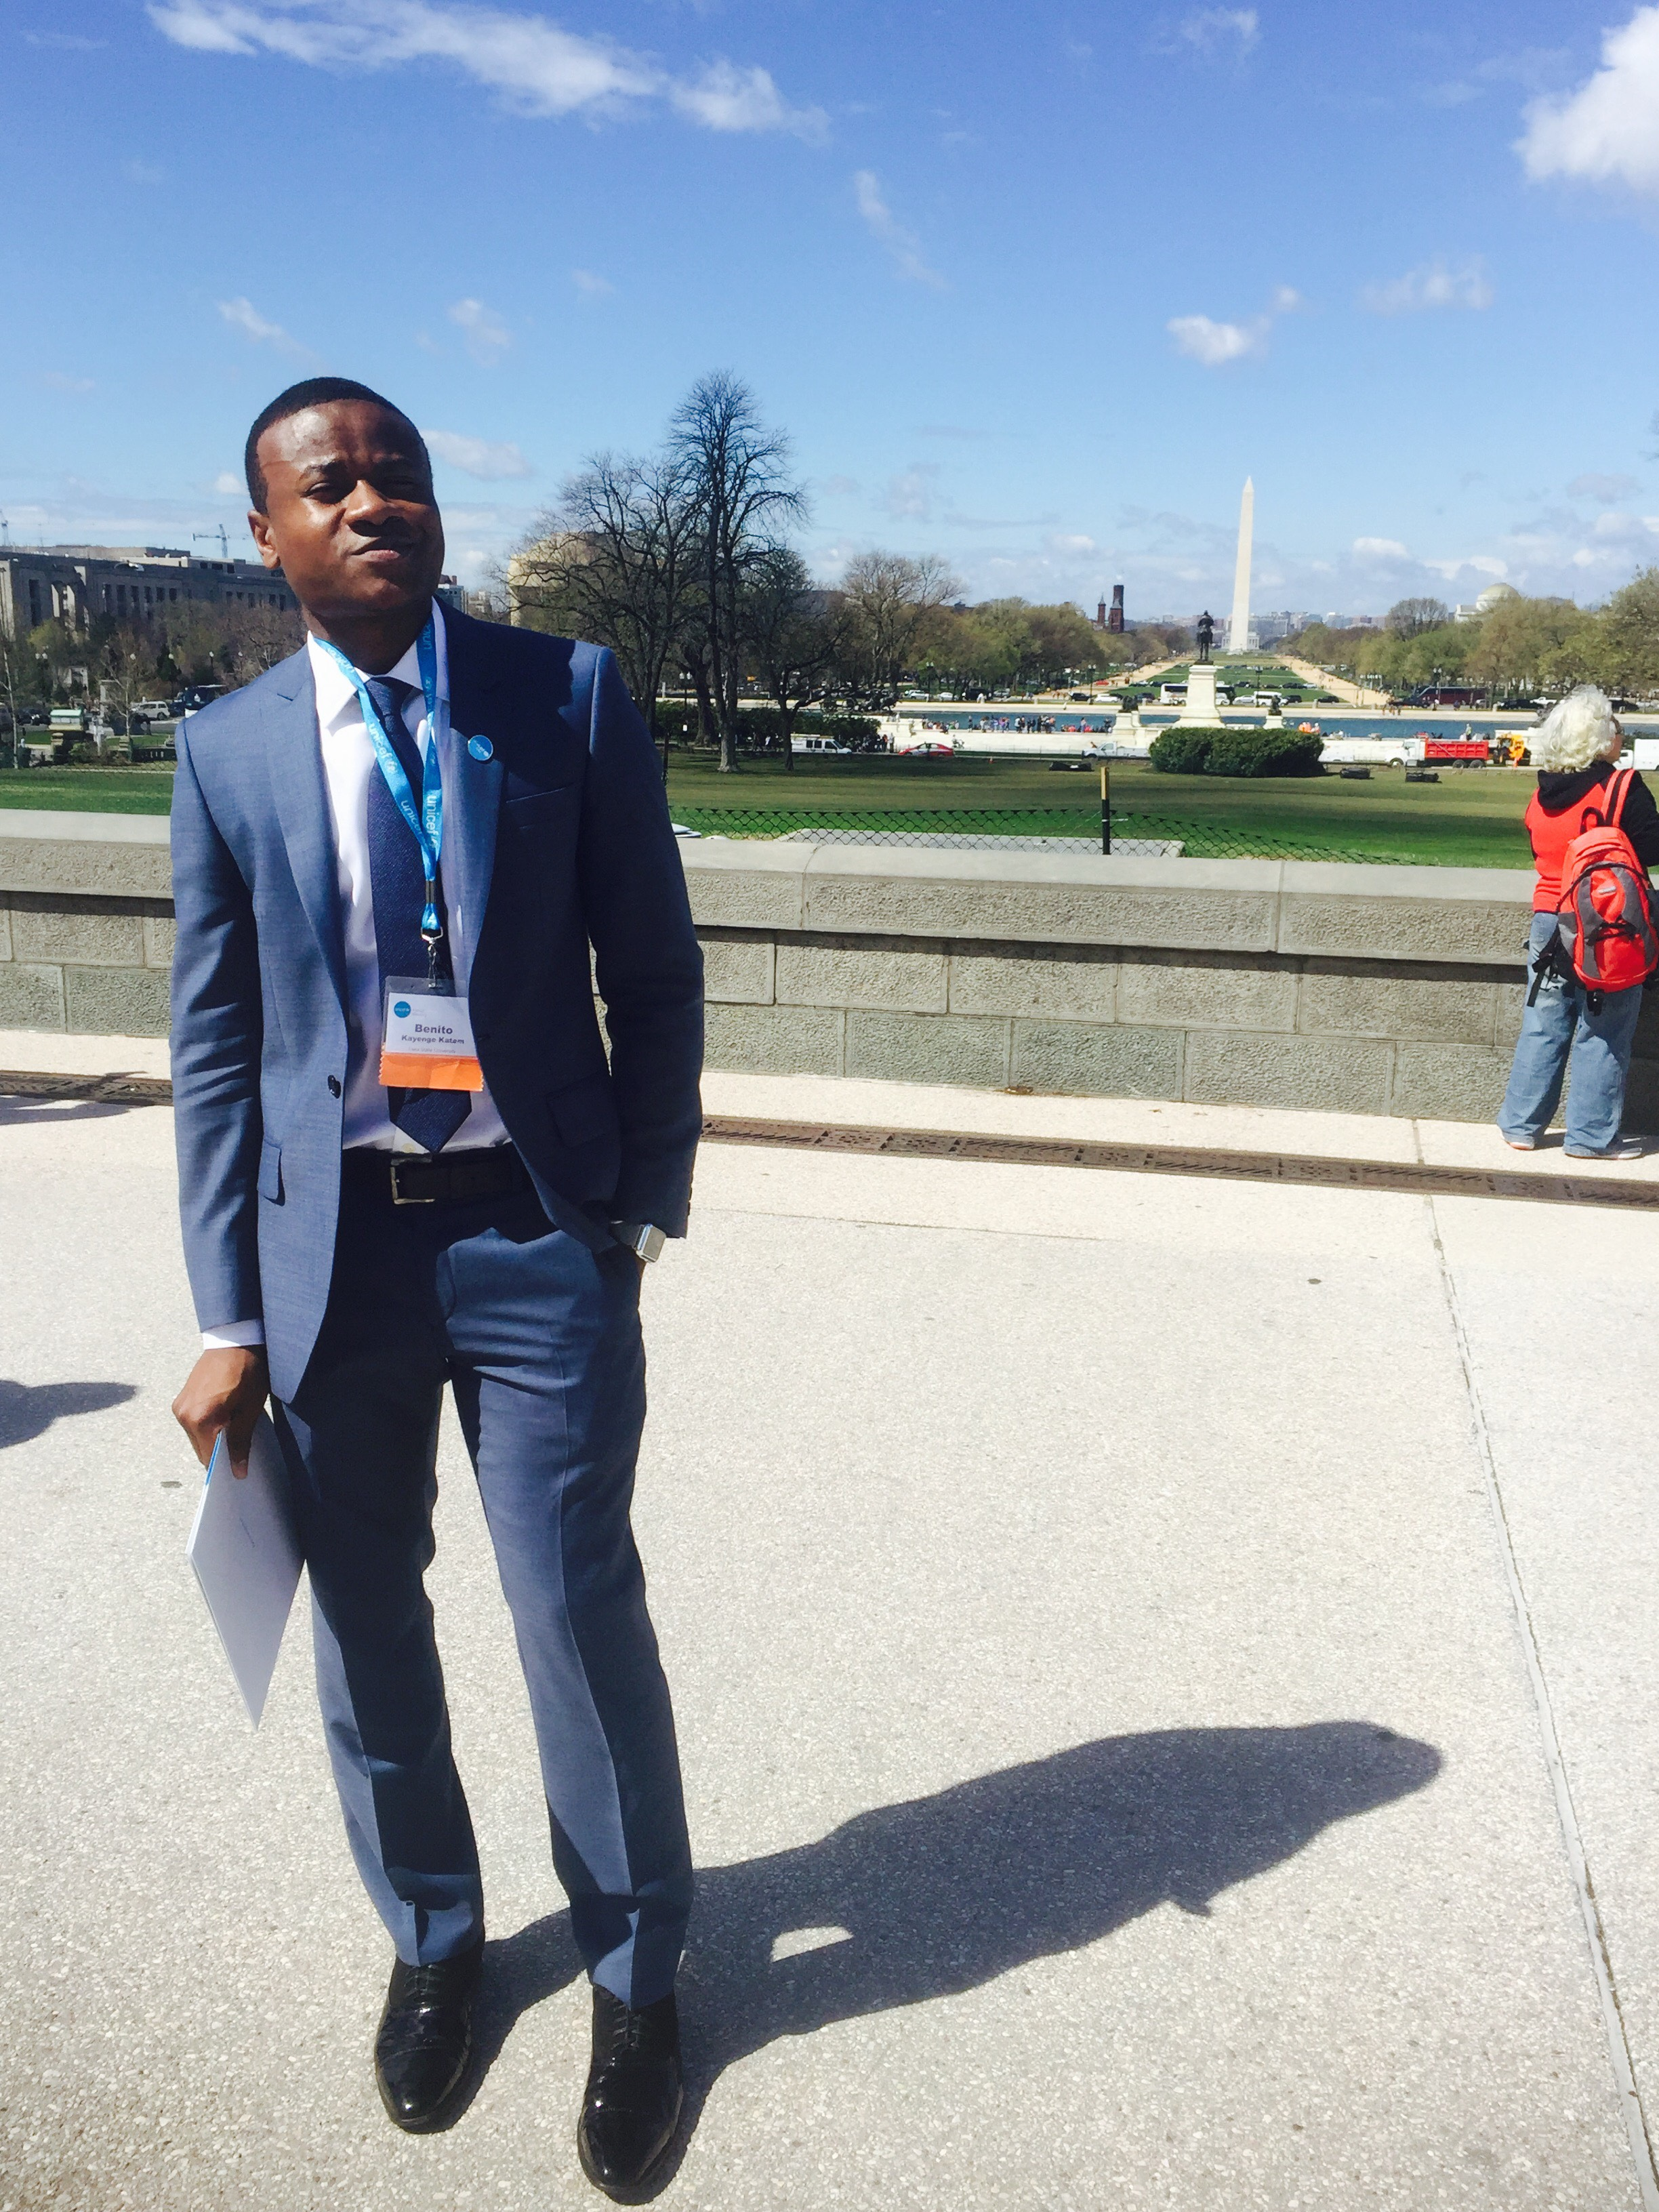 Benito Kayenge stands outside in Washington D.C. with the National Mall in the distance.